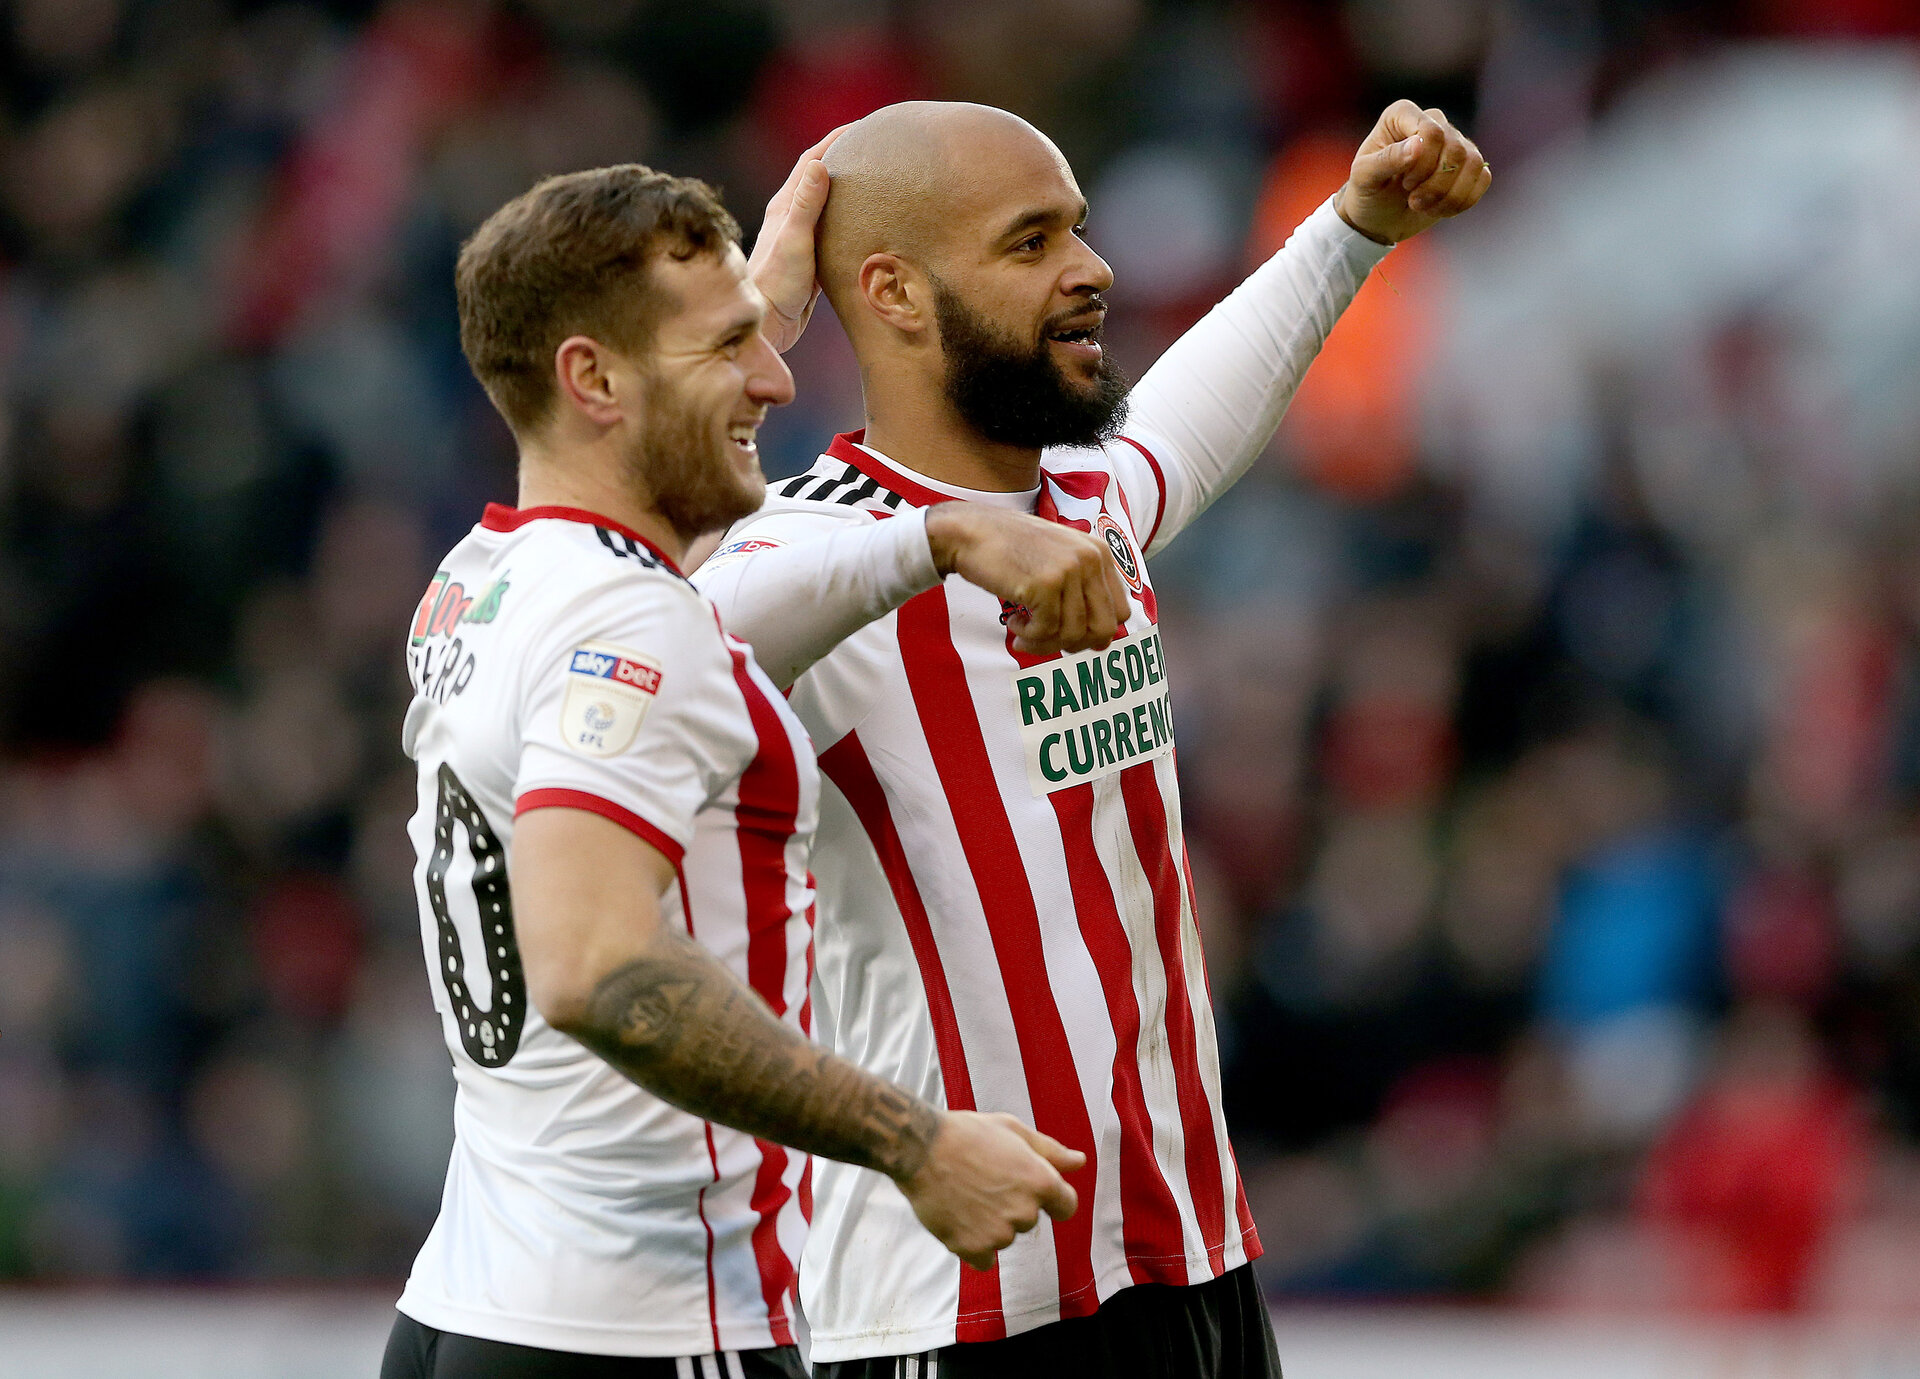 SHEFFIELD, ENGLAND - FEBRUARY 02:  David McGoldrick (R) of Sheffield United celebrates scoring with Billy Sharp during the Sky Bet Championship match between Sheffield United and Bolton Wanderers at Bramall Lane on February 2, 2019 in Sheffield, England. (Photo by Nigel Roddis/Getty Images)